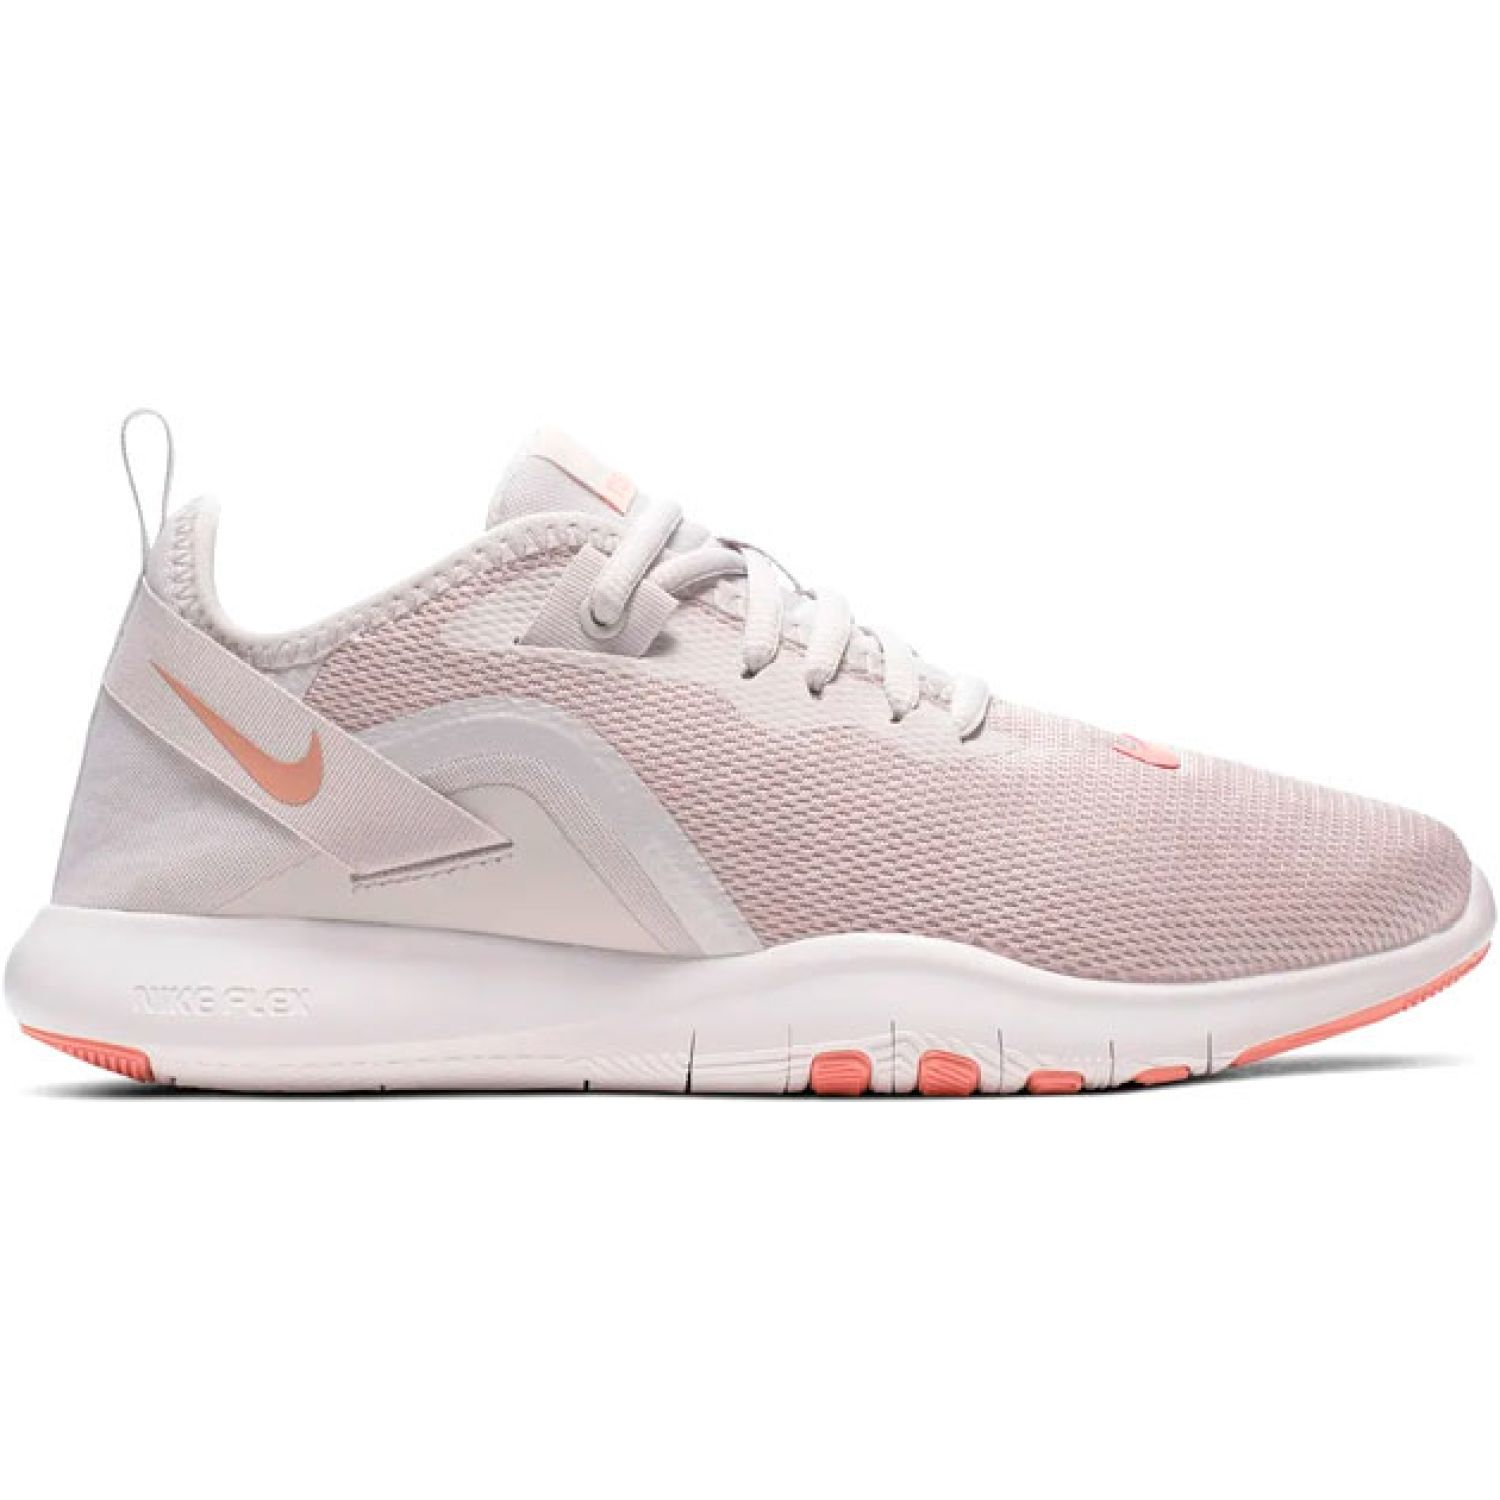 Nike WMNS NIKE FLEX TRAINER 9 MELON / GRIS Mujeres